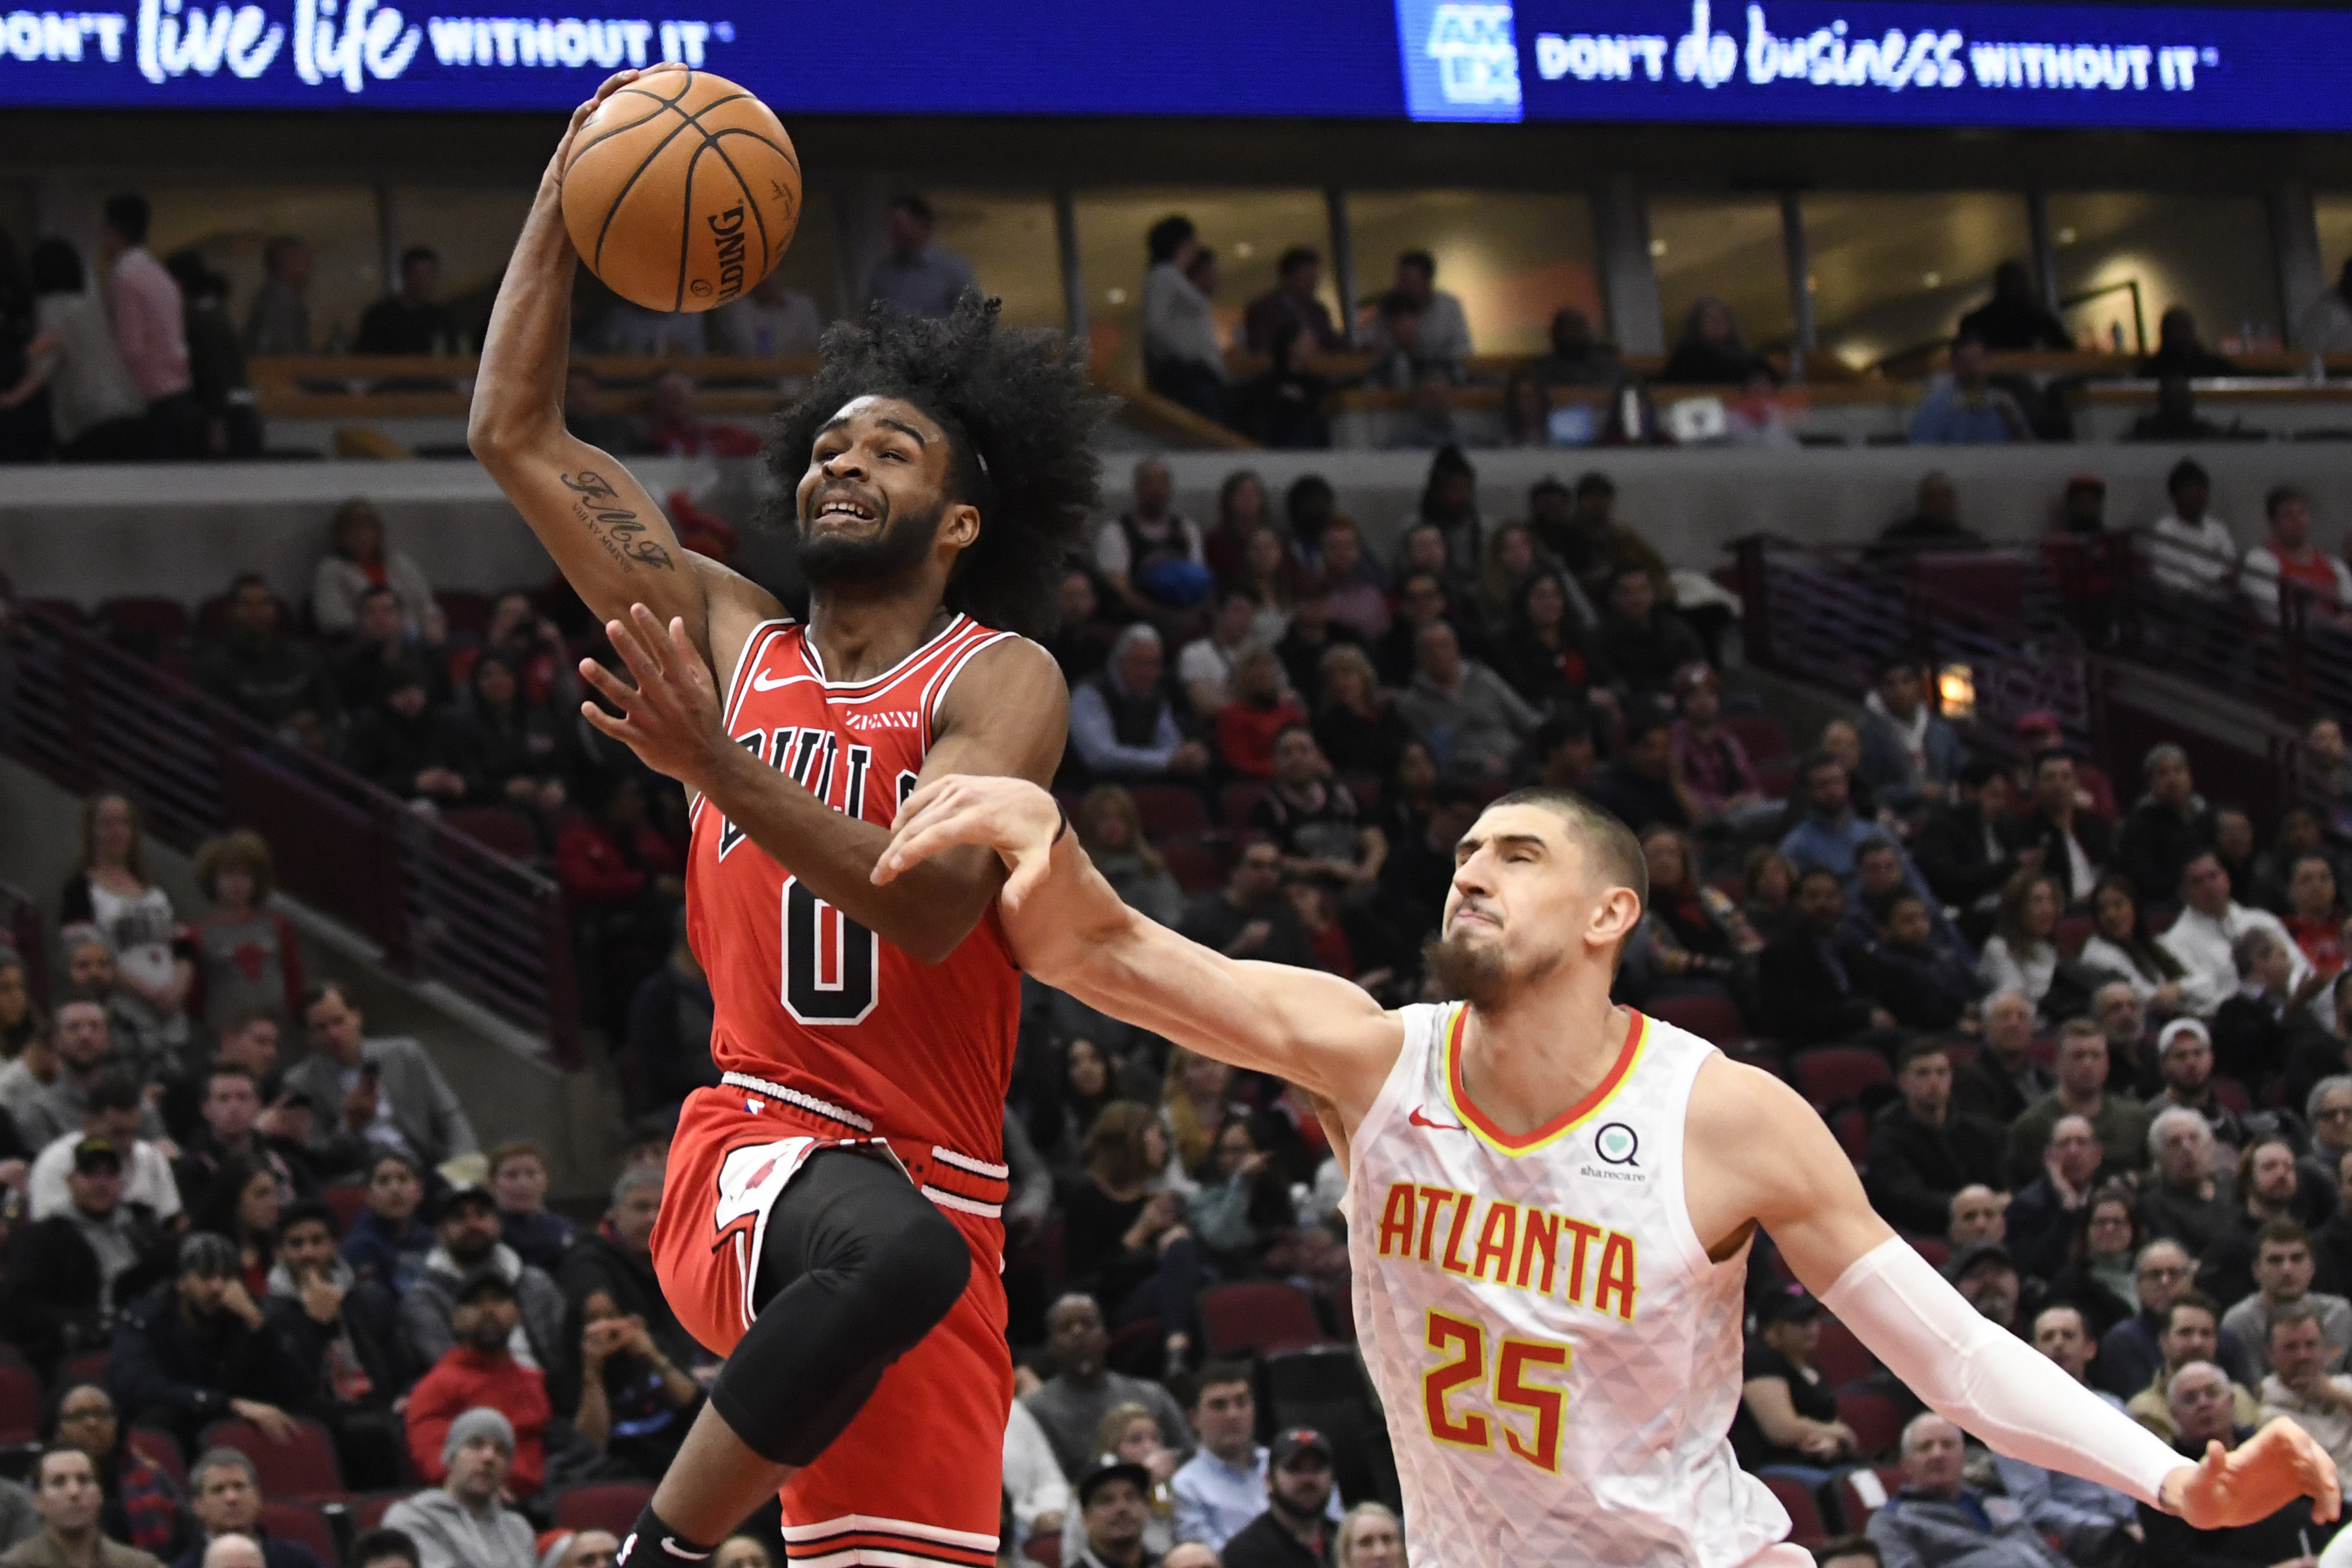 Bulls guard Coby White goes to the basket past Hawks center Alex Len Wednesday at the United Center.